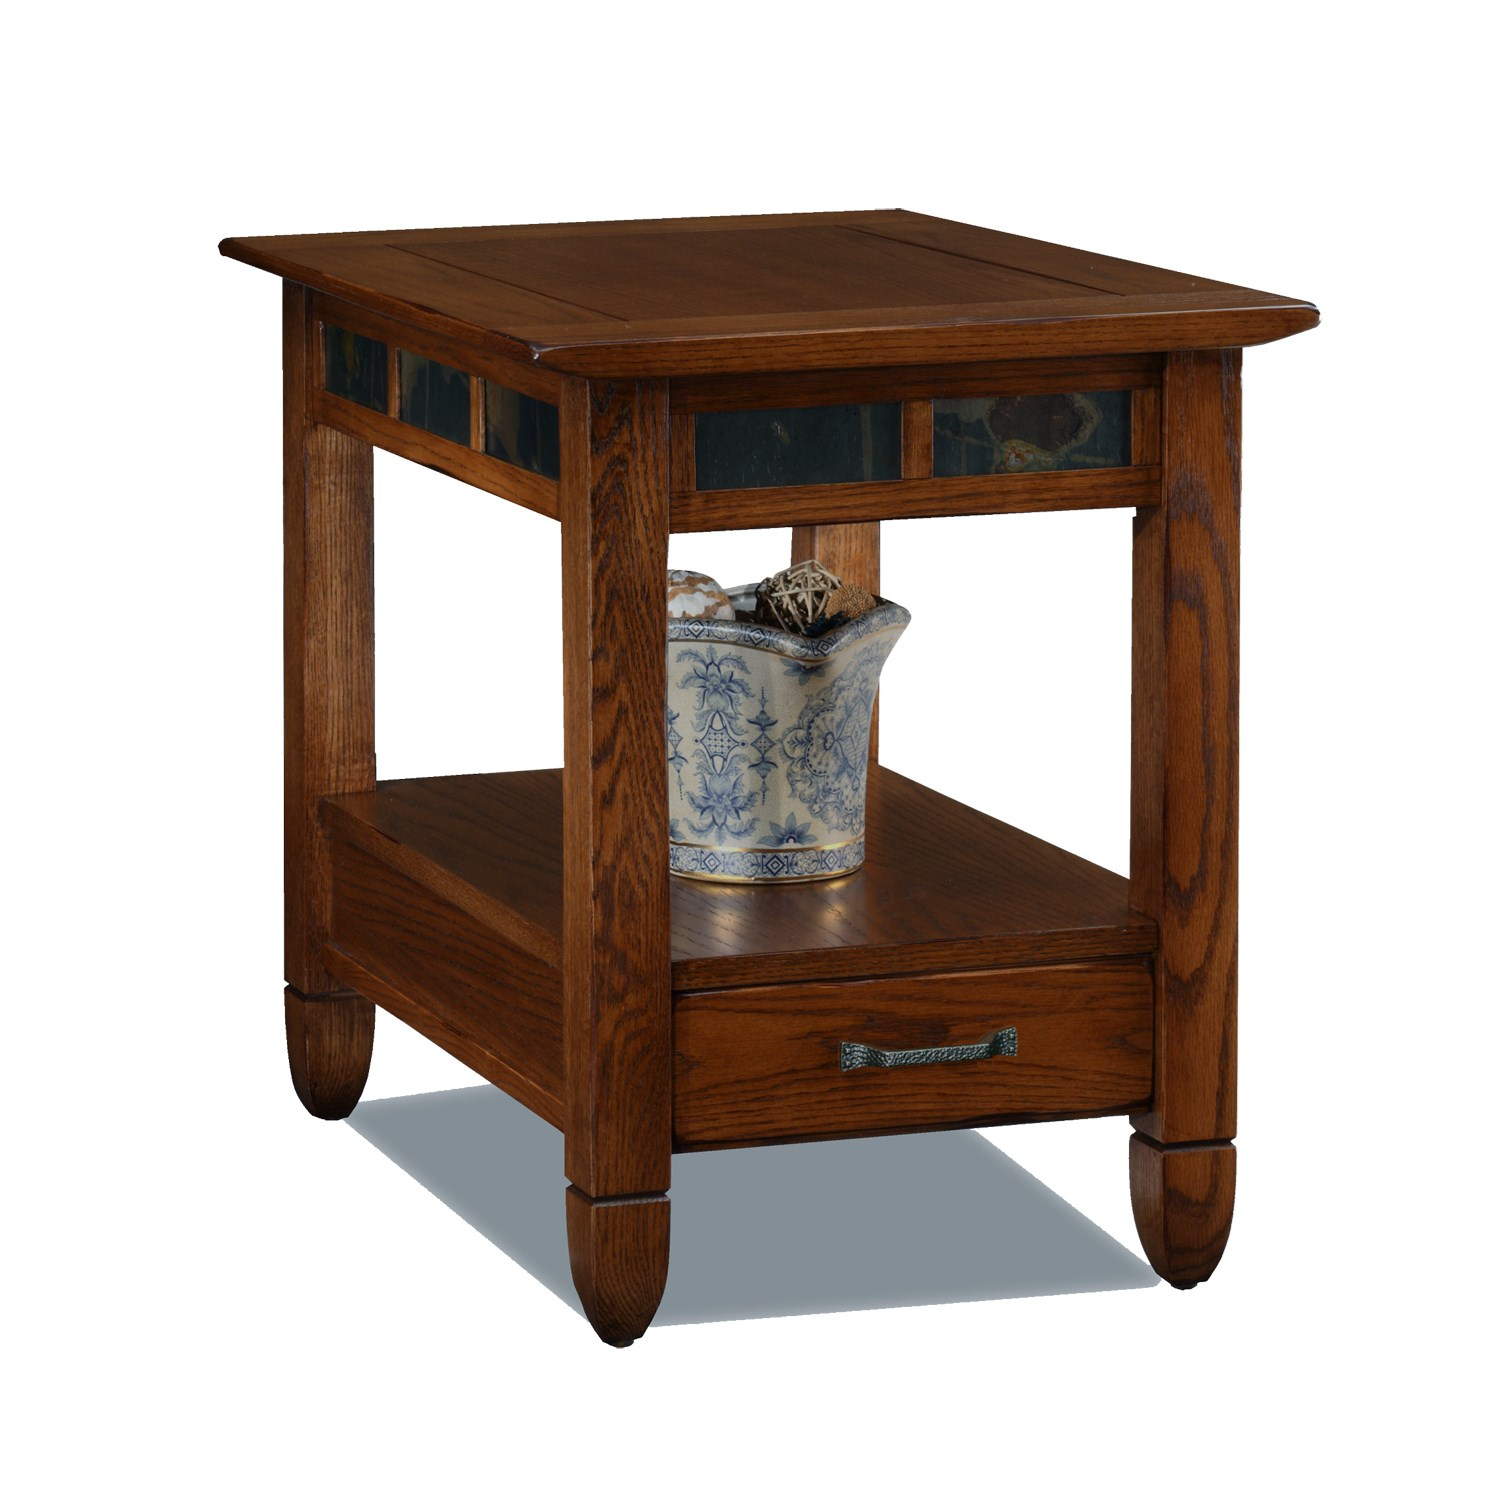 rustic accent table tables leick home slatestone end oak corner wrought iron bistro set cloth uttermost gin cube two bulb lamp tablecloth blue vase west elm petite shade floor